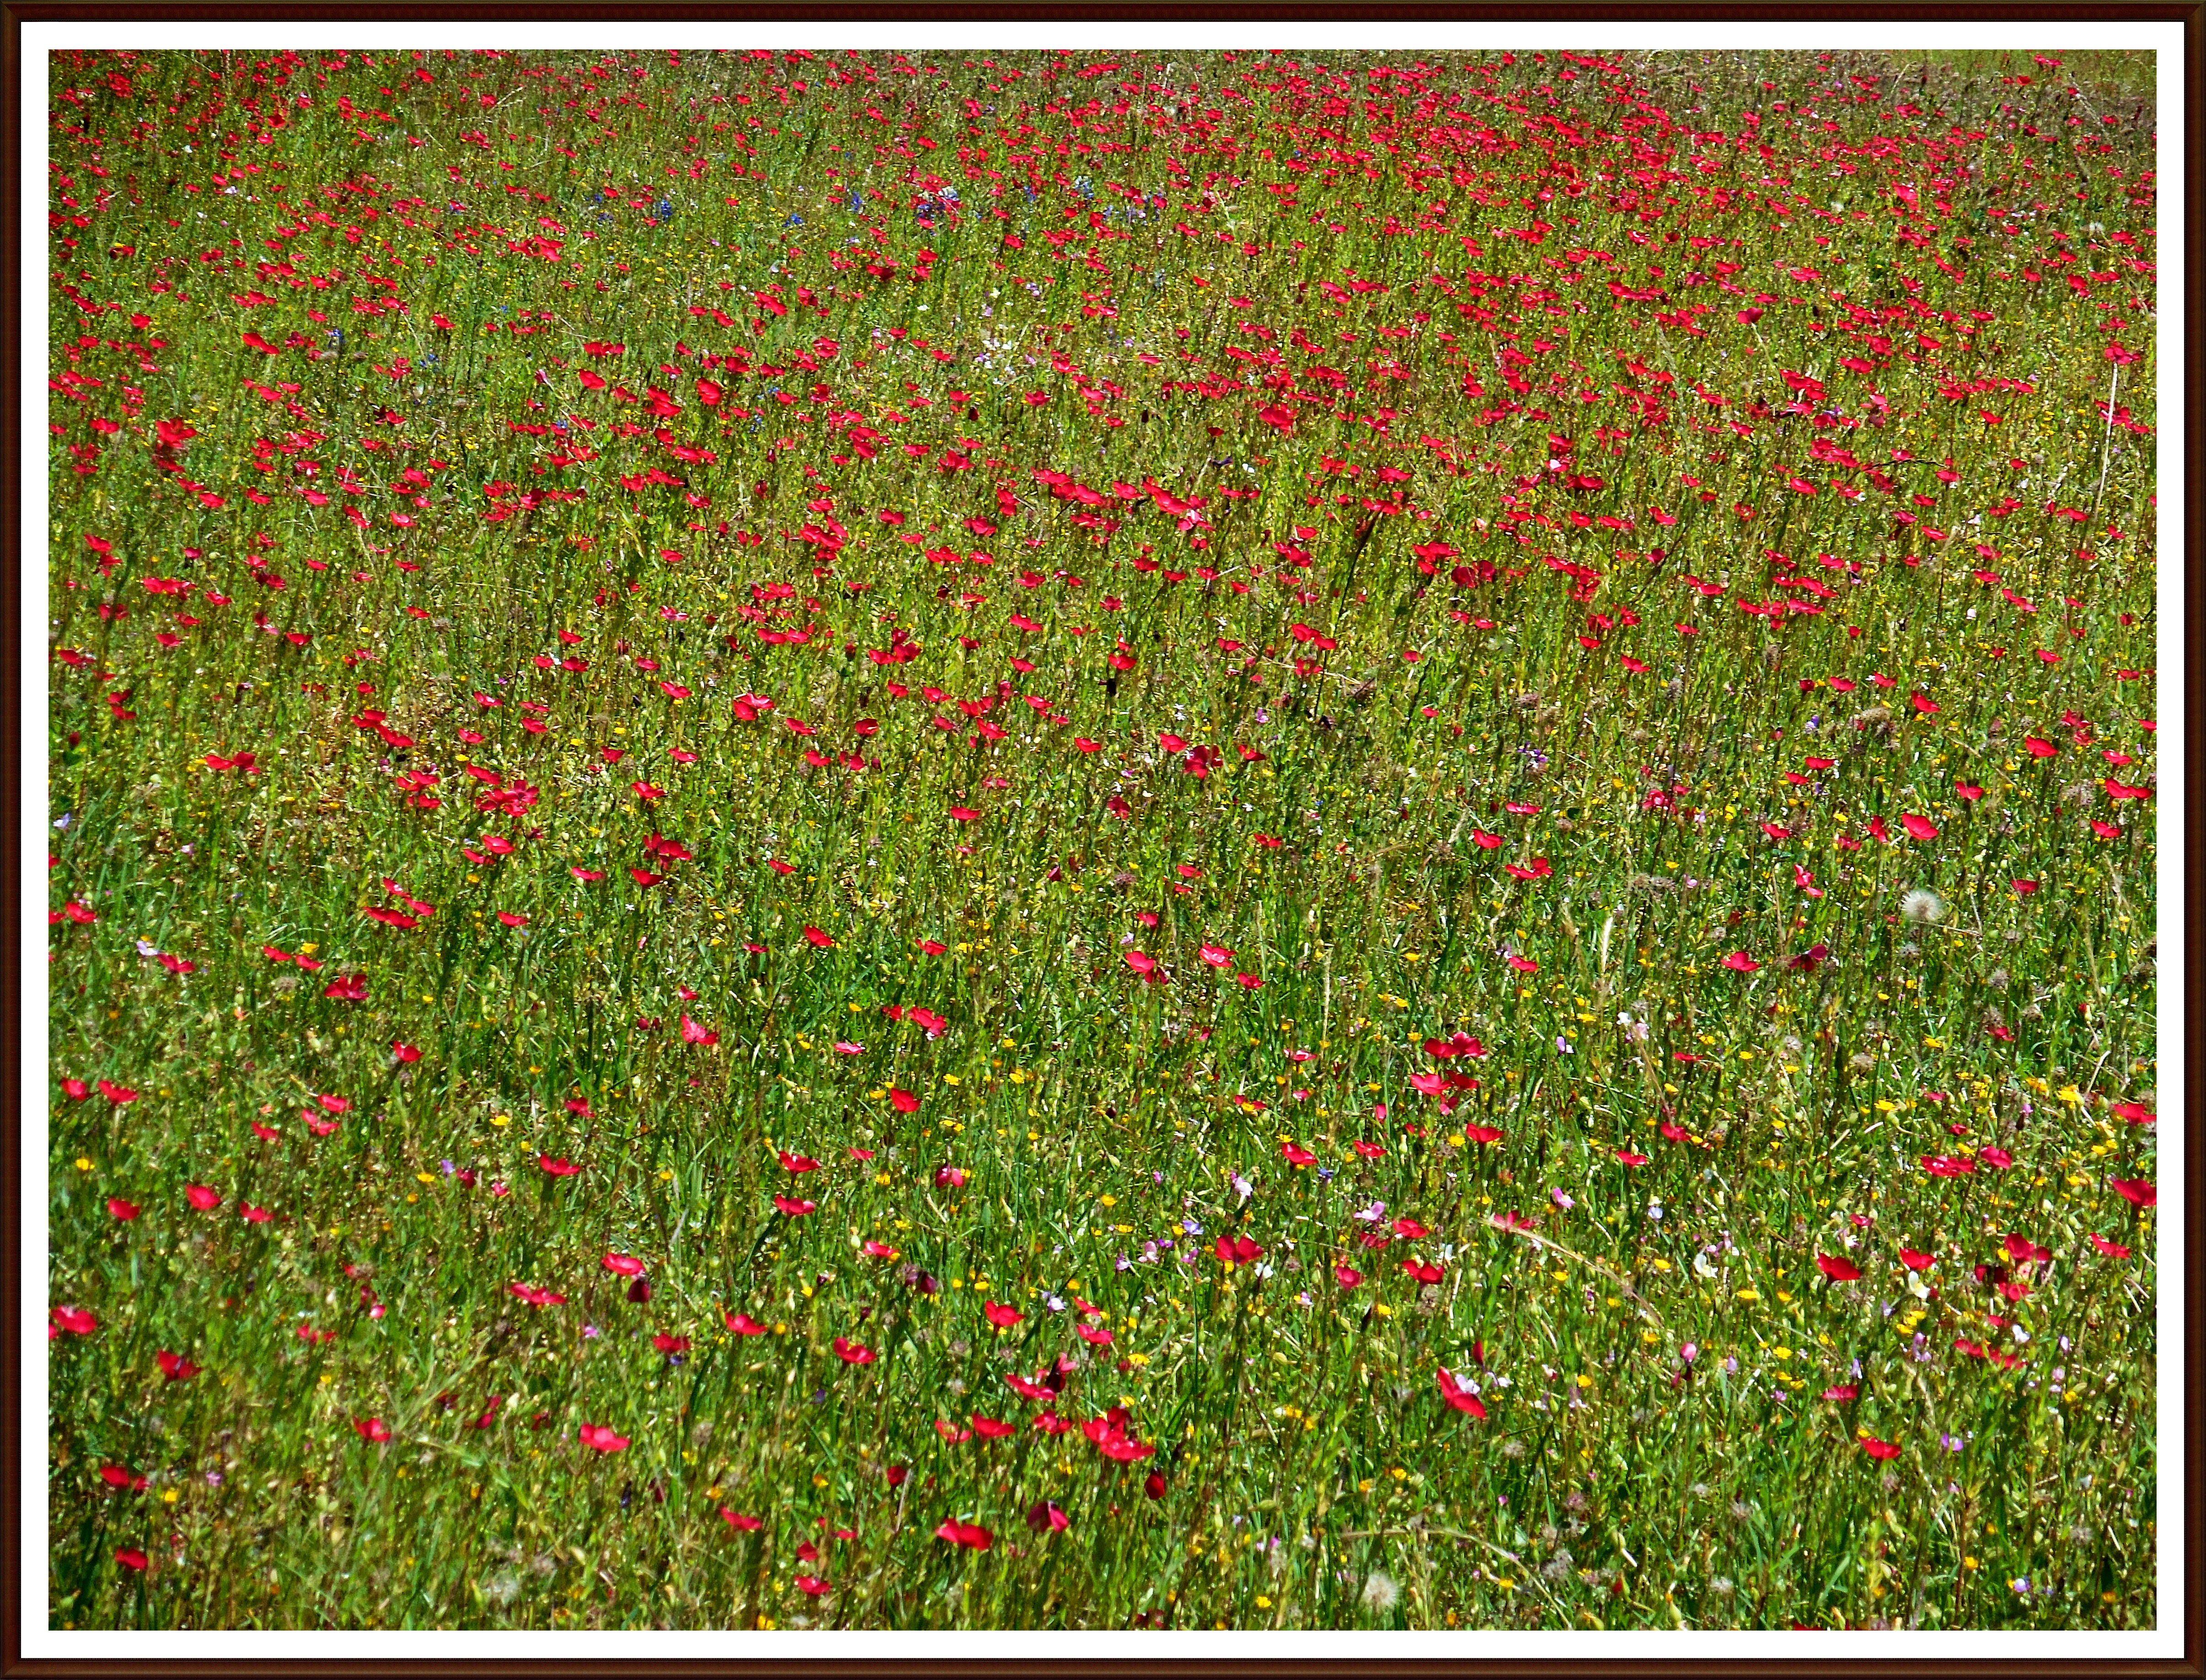 A rosy rash of poppies!